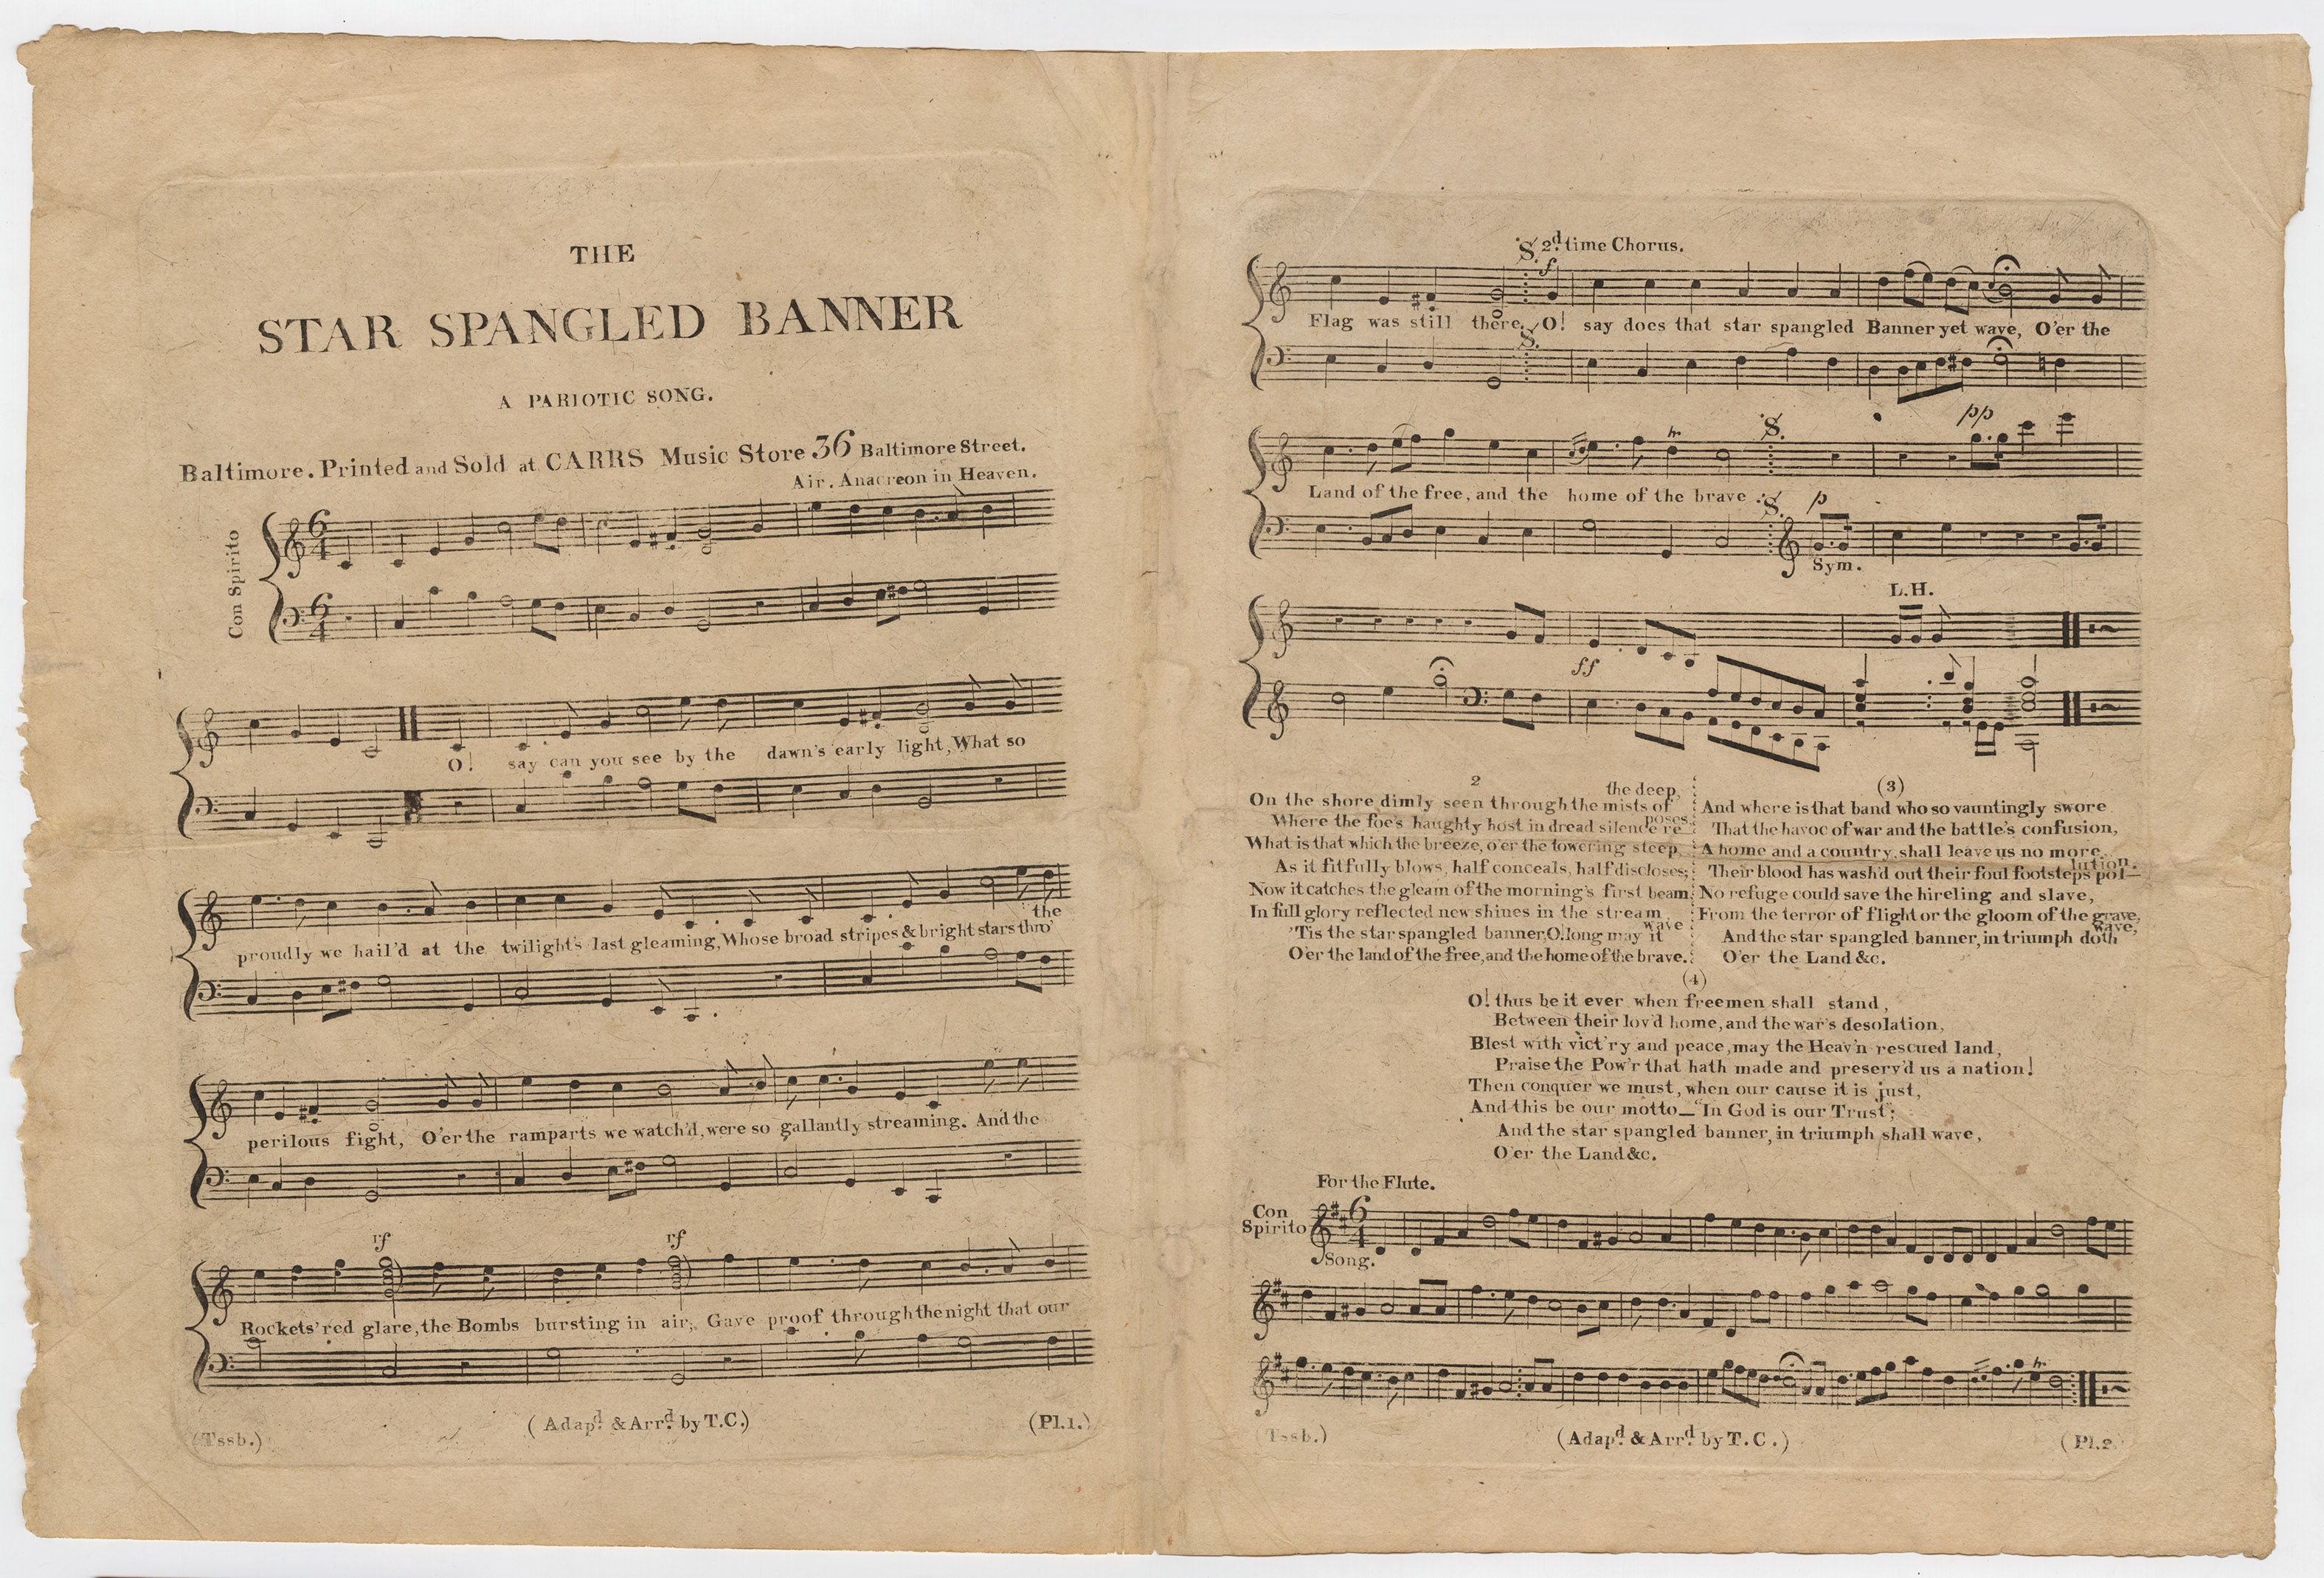 The Star Spangled Banner What It Really Means